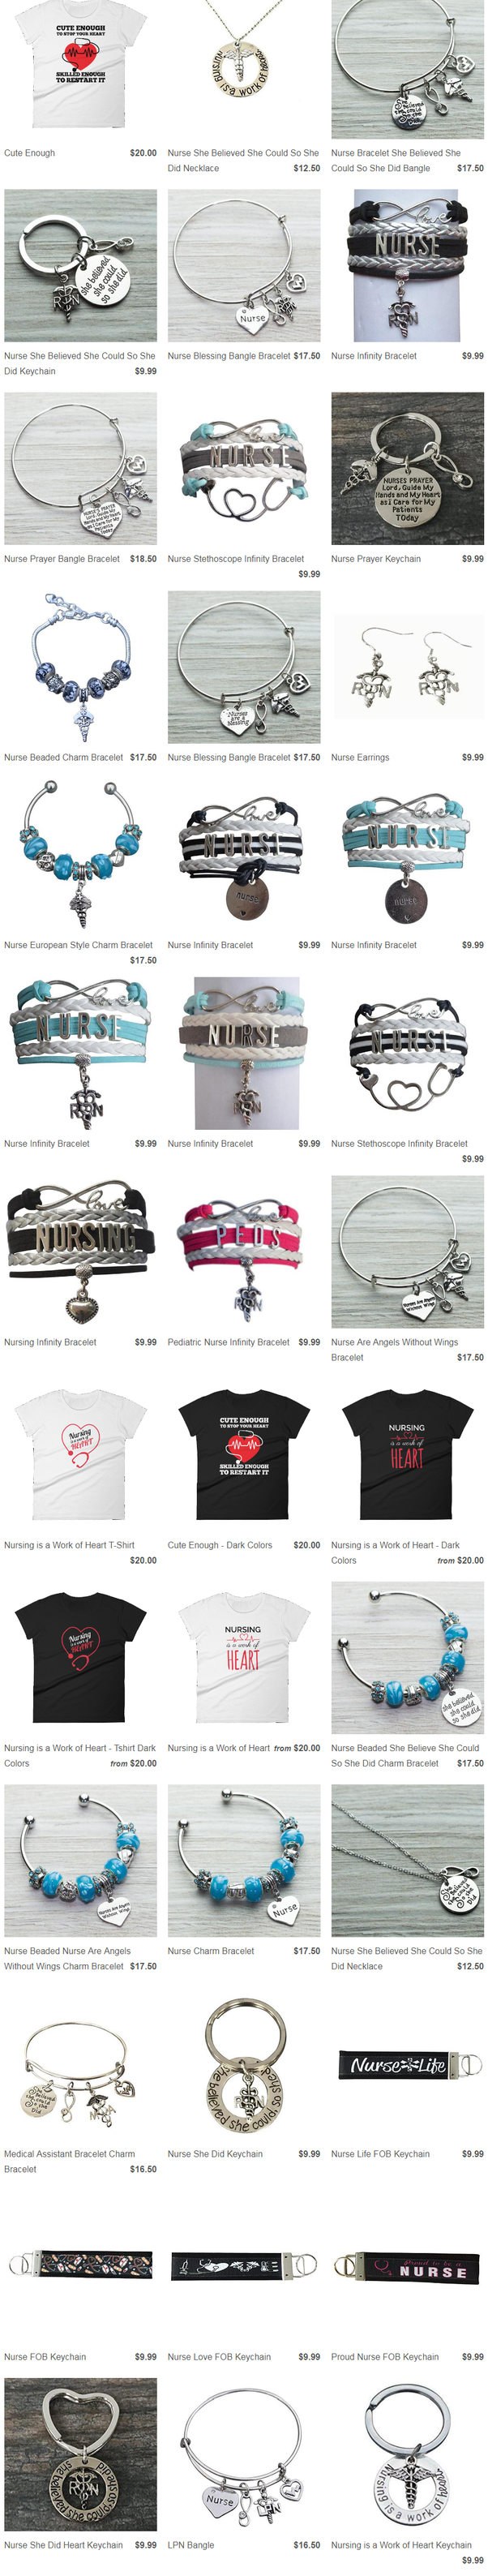 work of heart offers you all types of inspirational jewelry and accessories on affordable price check out our latest trends of inspirational nurse jewelry